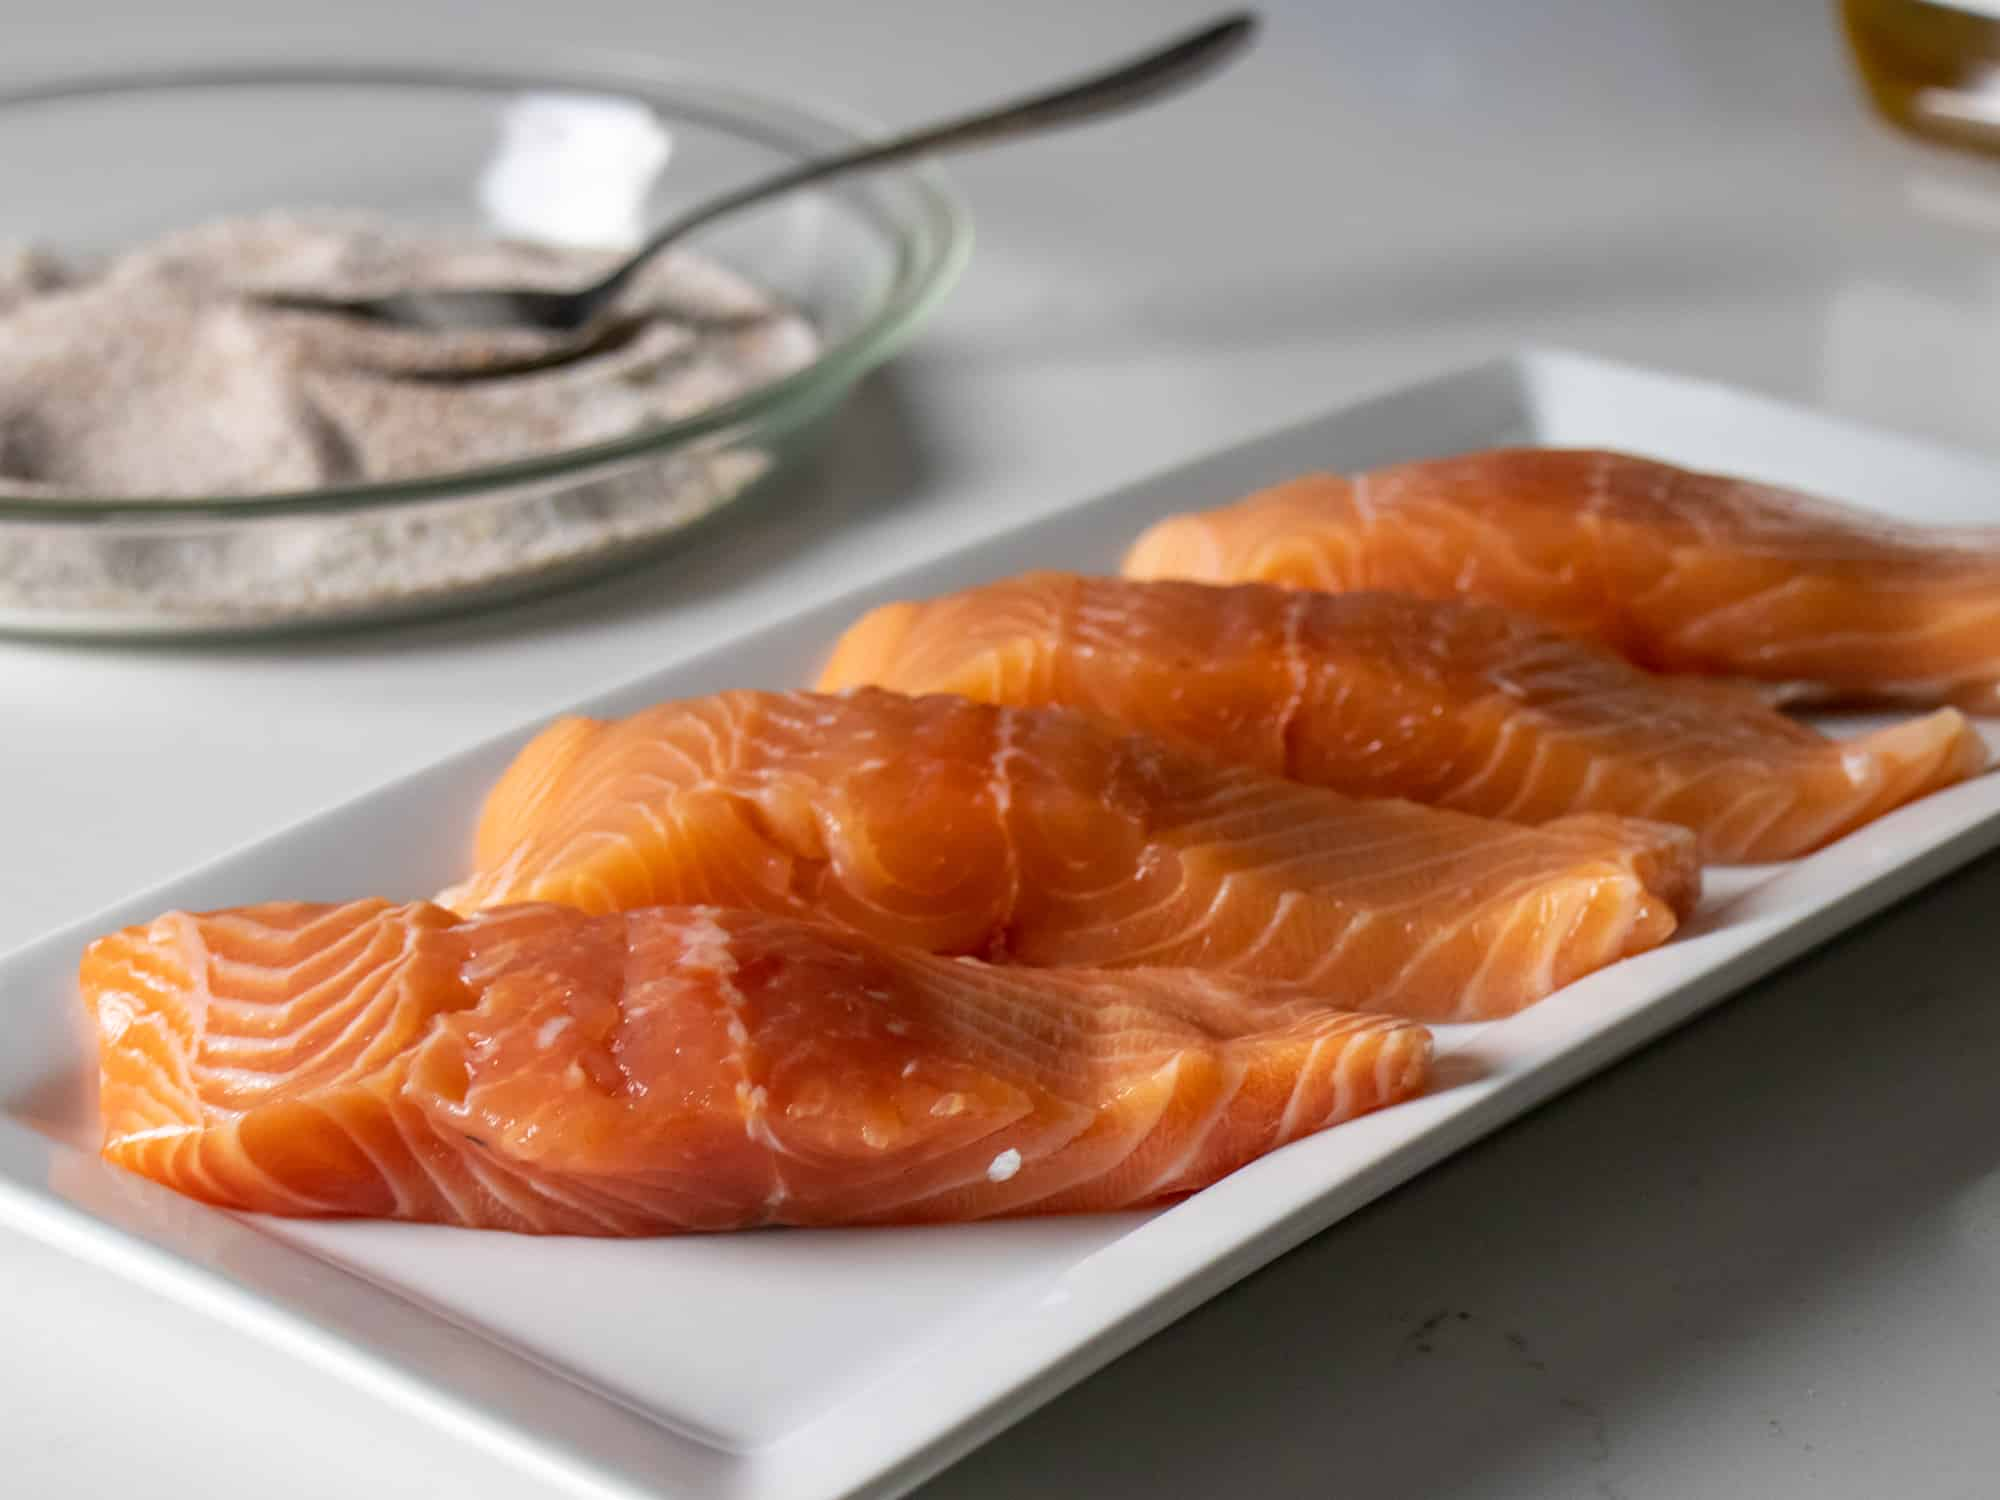 Individual portion salmon fillets (4oz/113g)